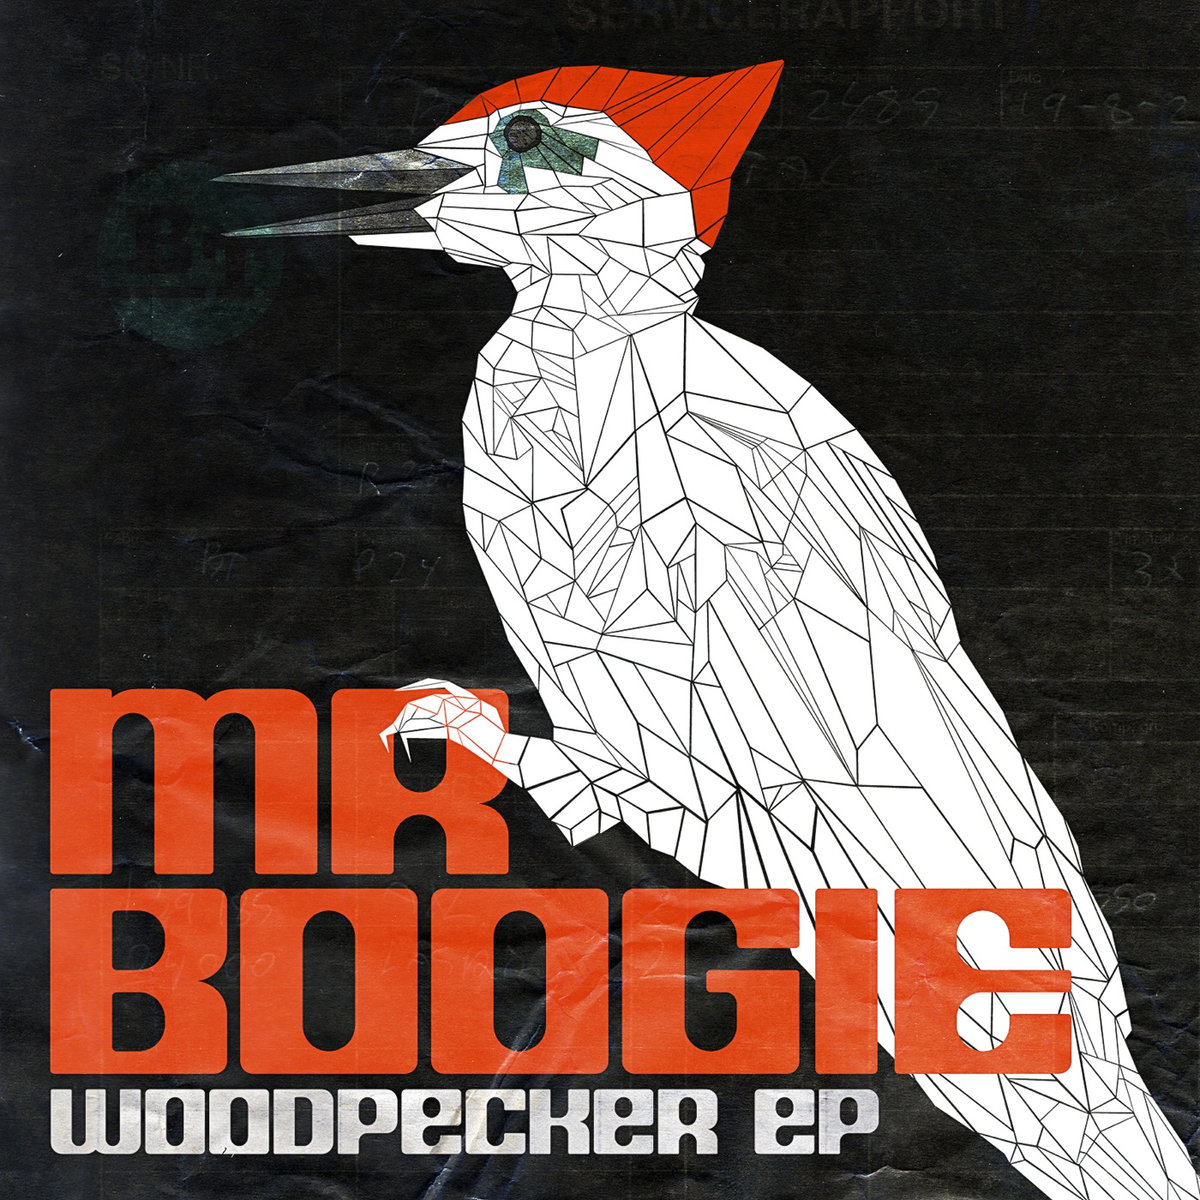 Mr. Boogie - Woodpecker (El Diablo Remix) @ 'Woodpecker' album (electronic, dubstep)